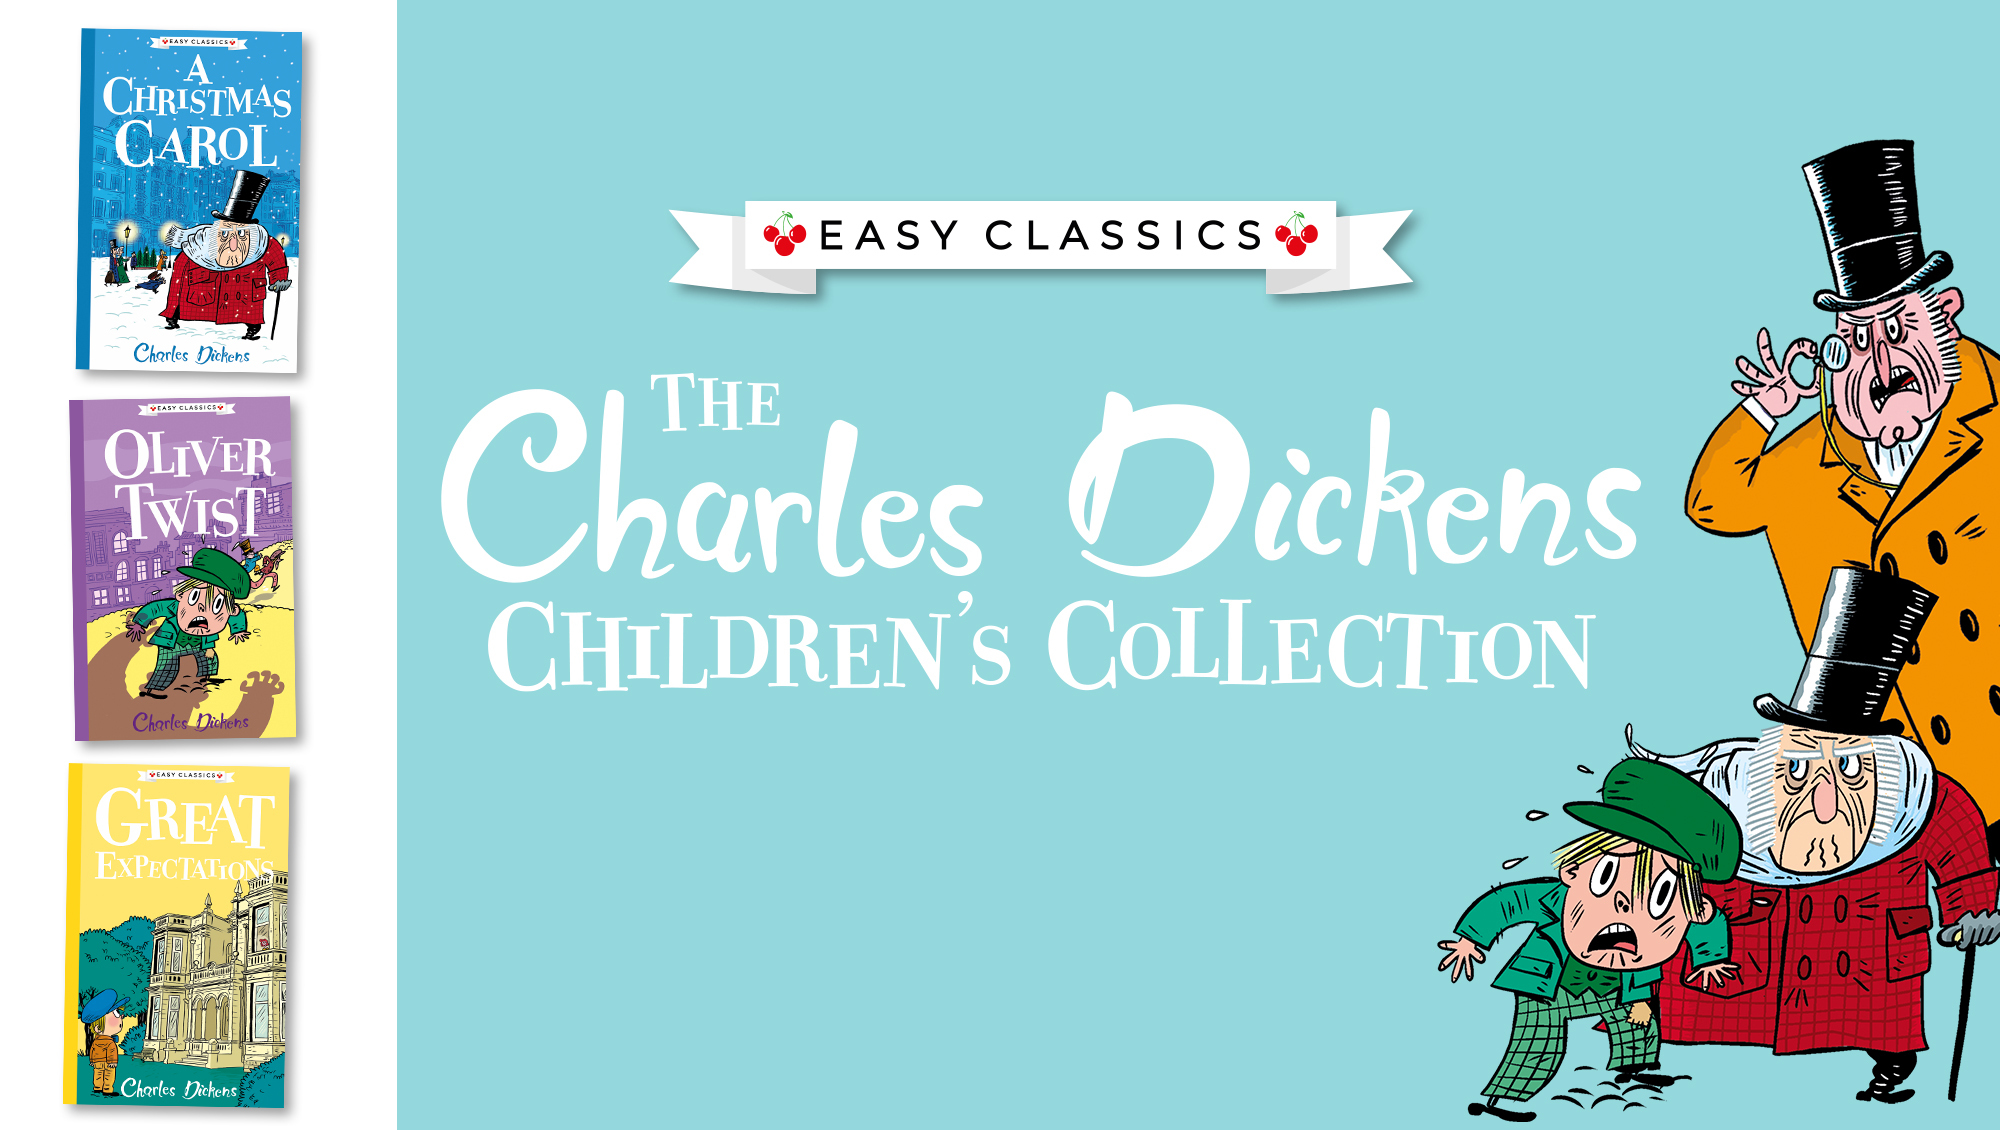 The Charles Dickens Children's Collection